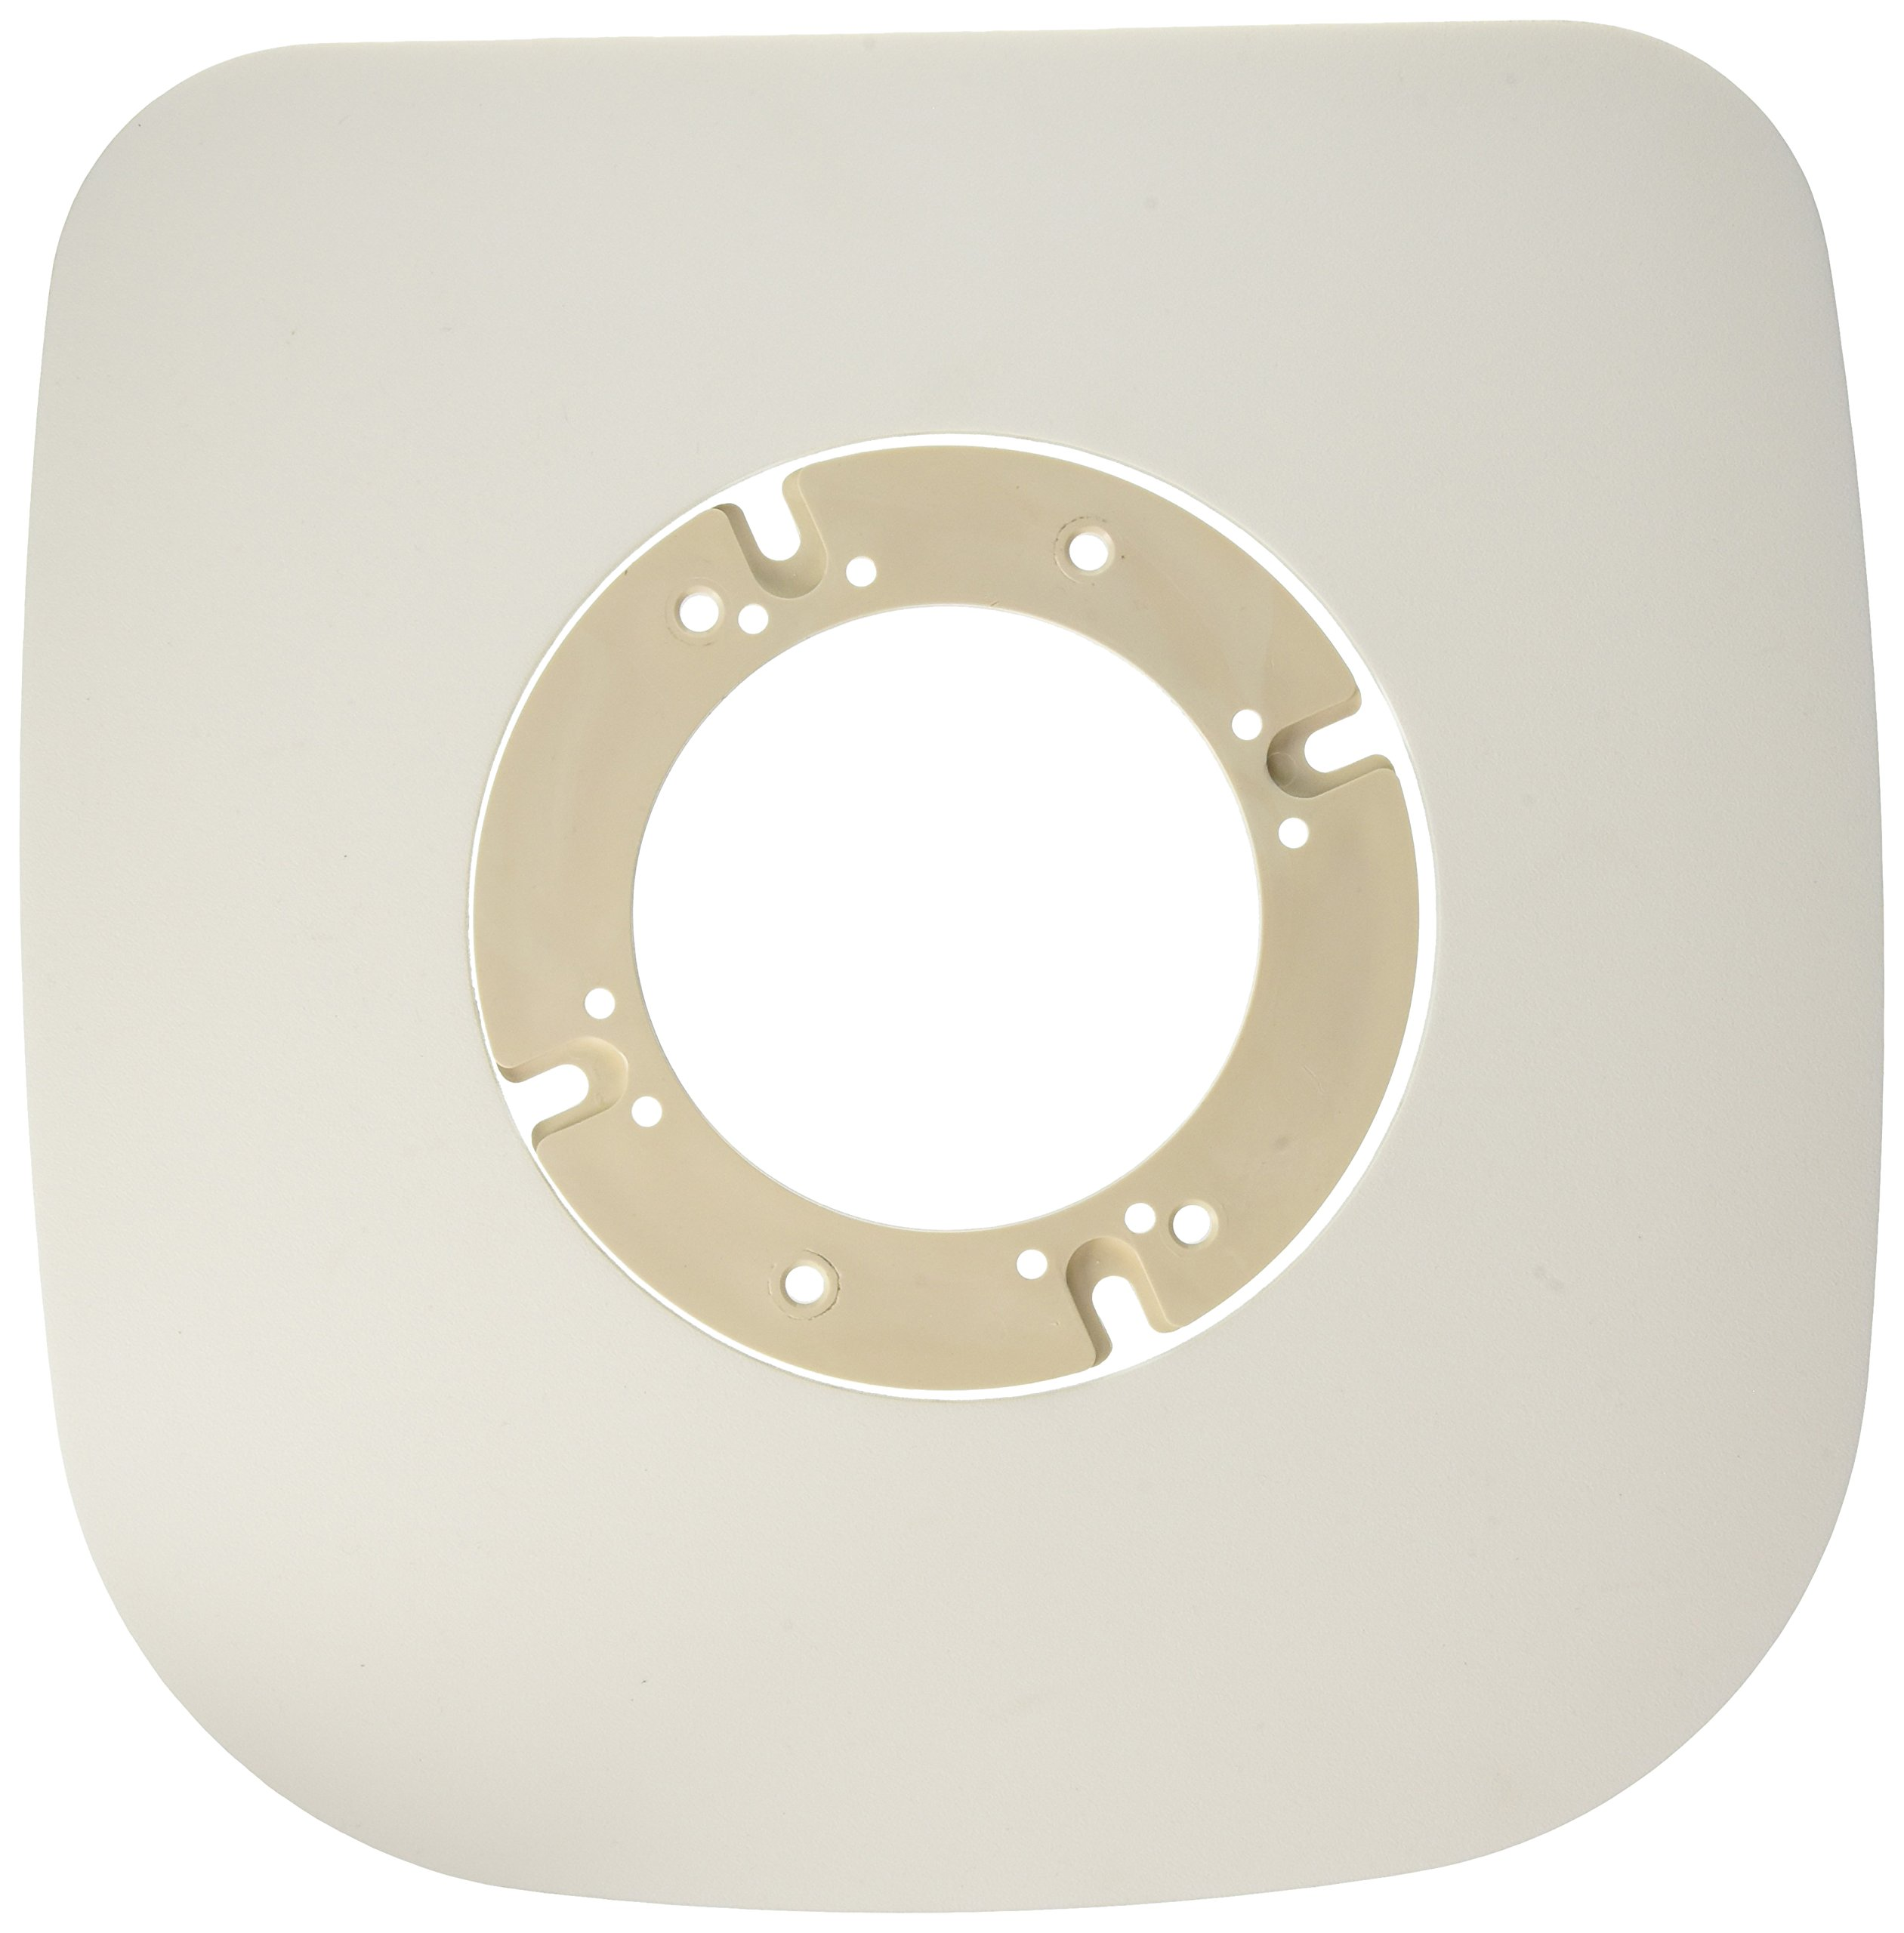 Dometic 385311719 310 Mounting Adapter Kit - White by Dometic